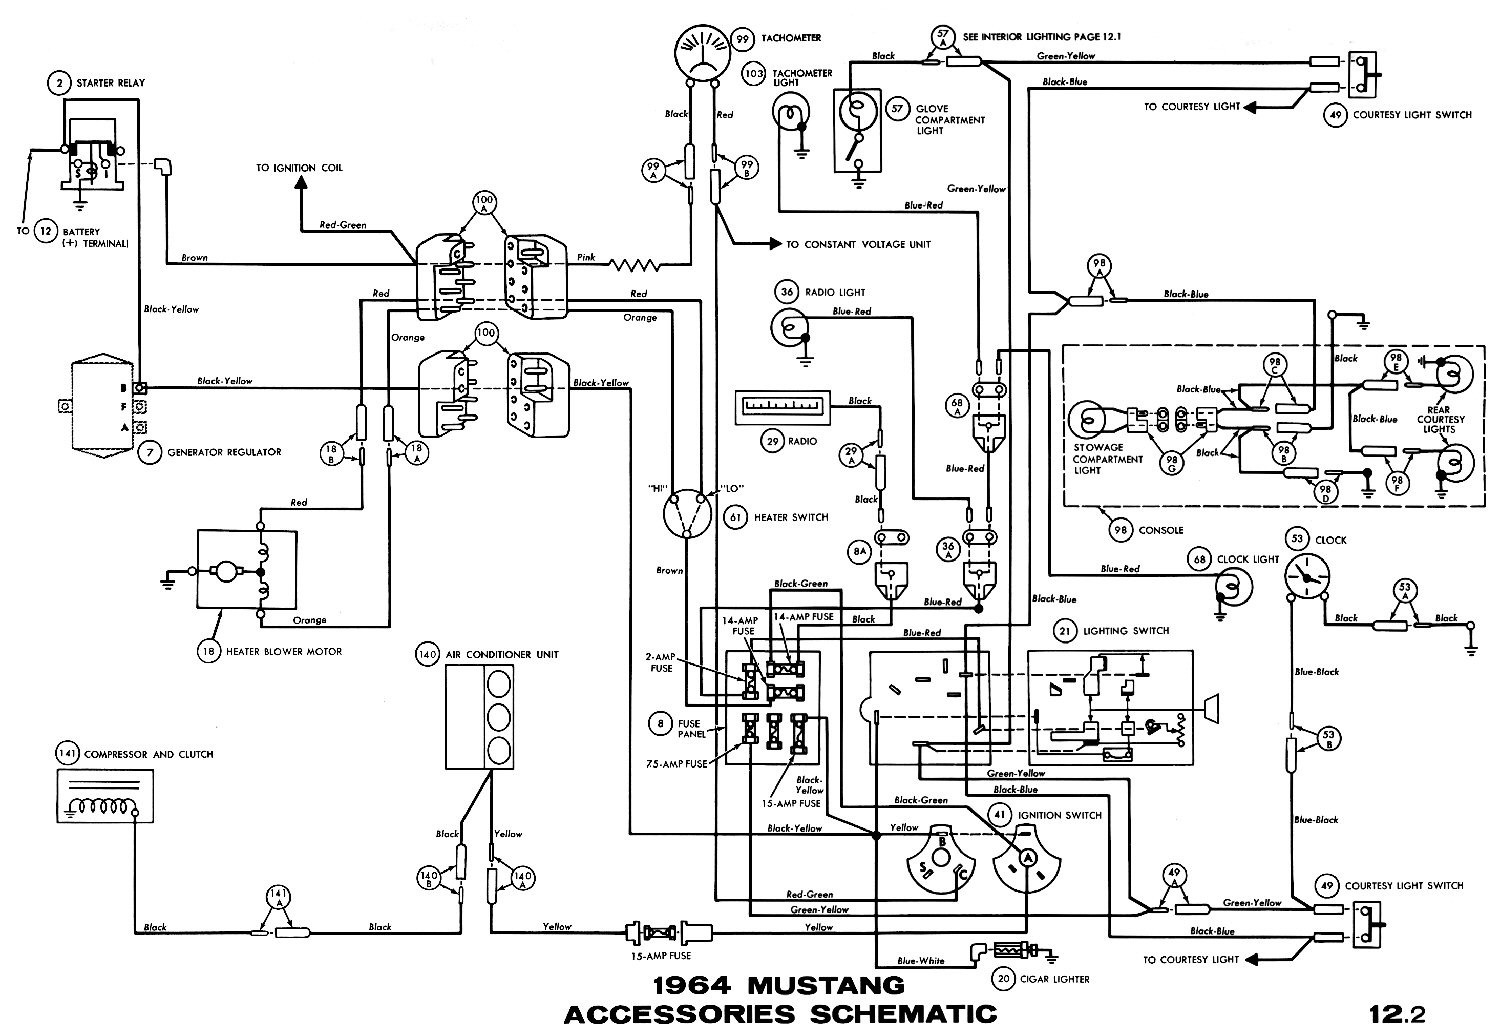 hight resolution of 1990 mustang wiring diagram 1970 mustang wiring diagram pdf wiring diagram u2022 rh growbyte co